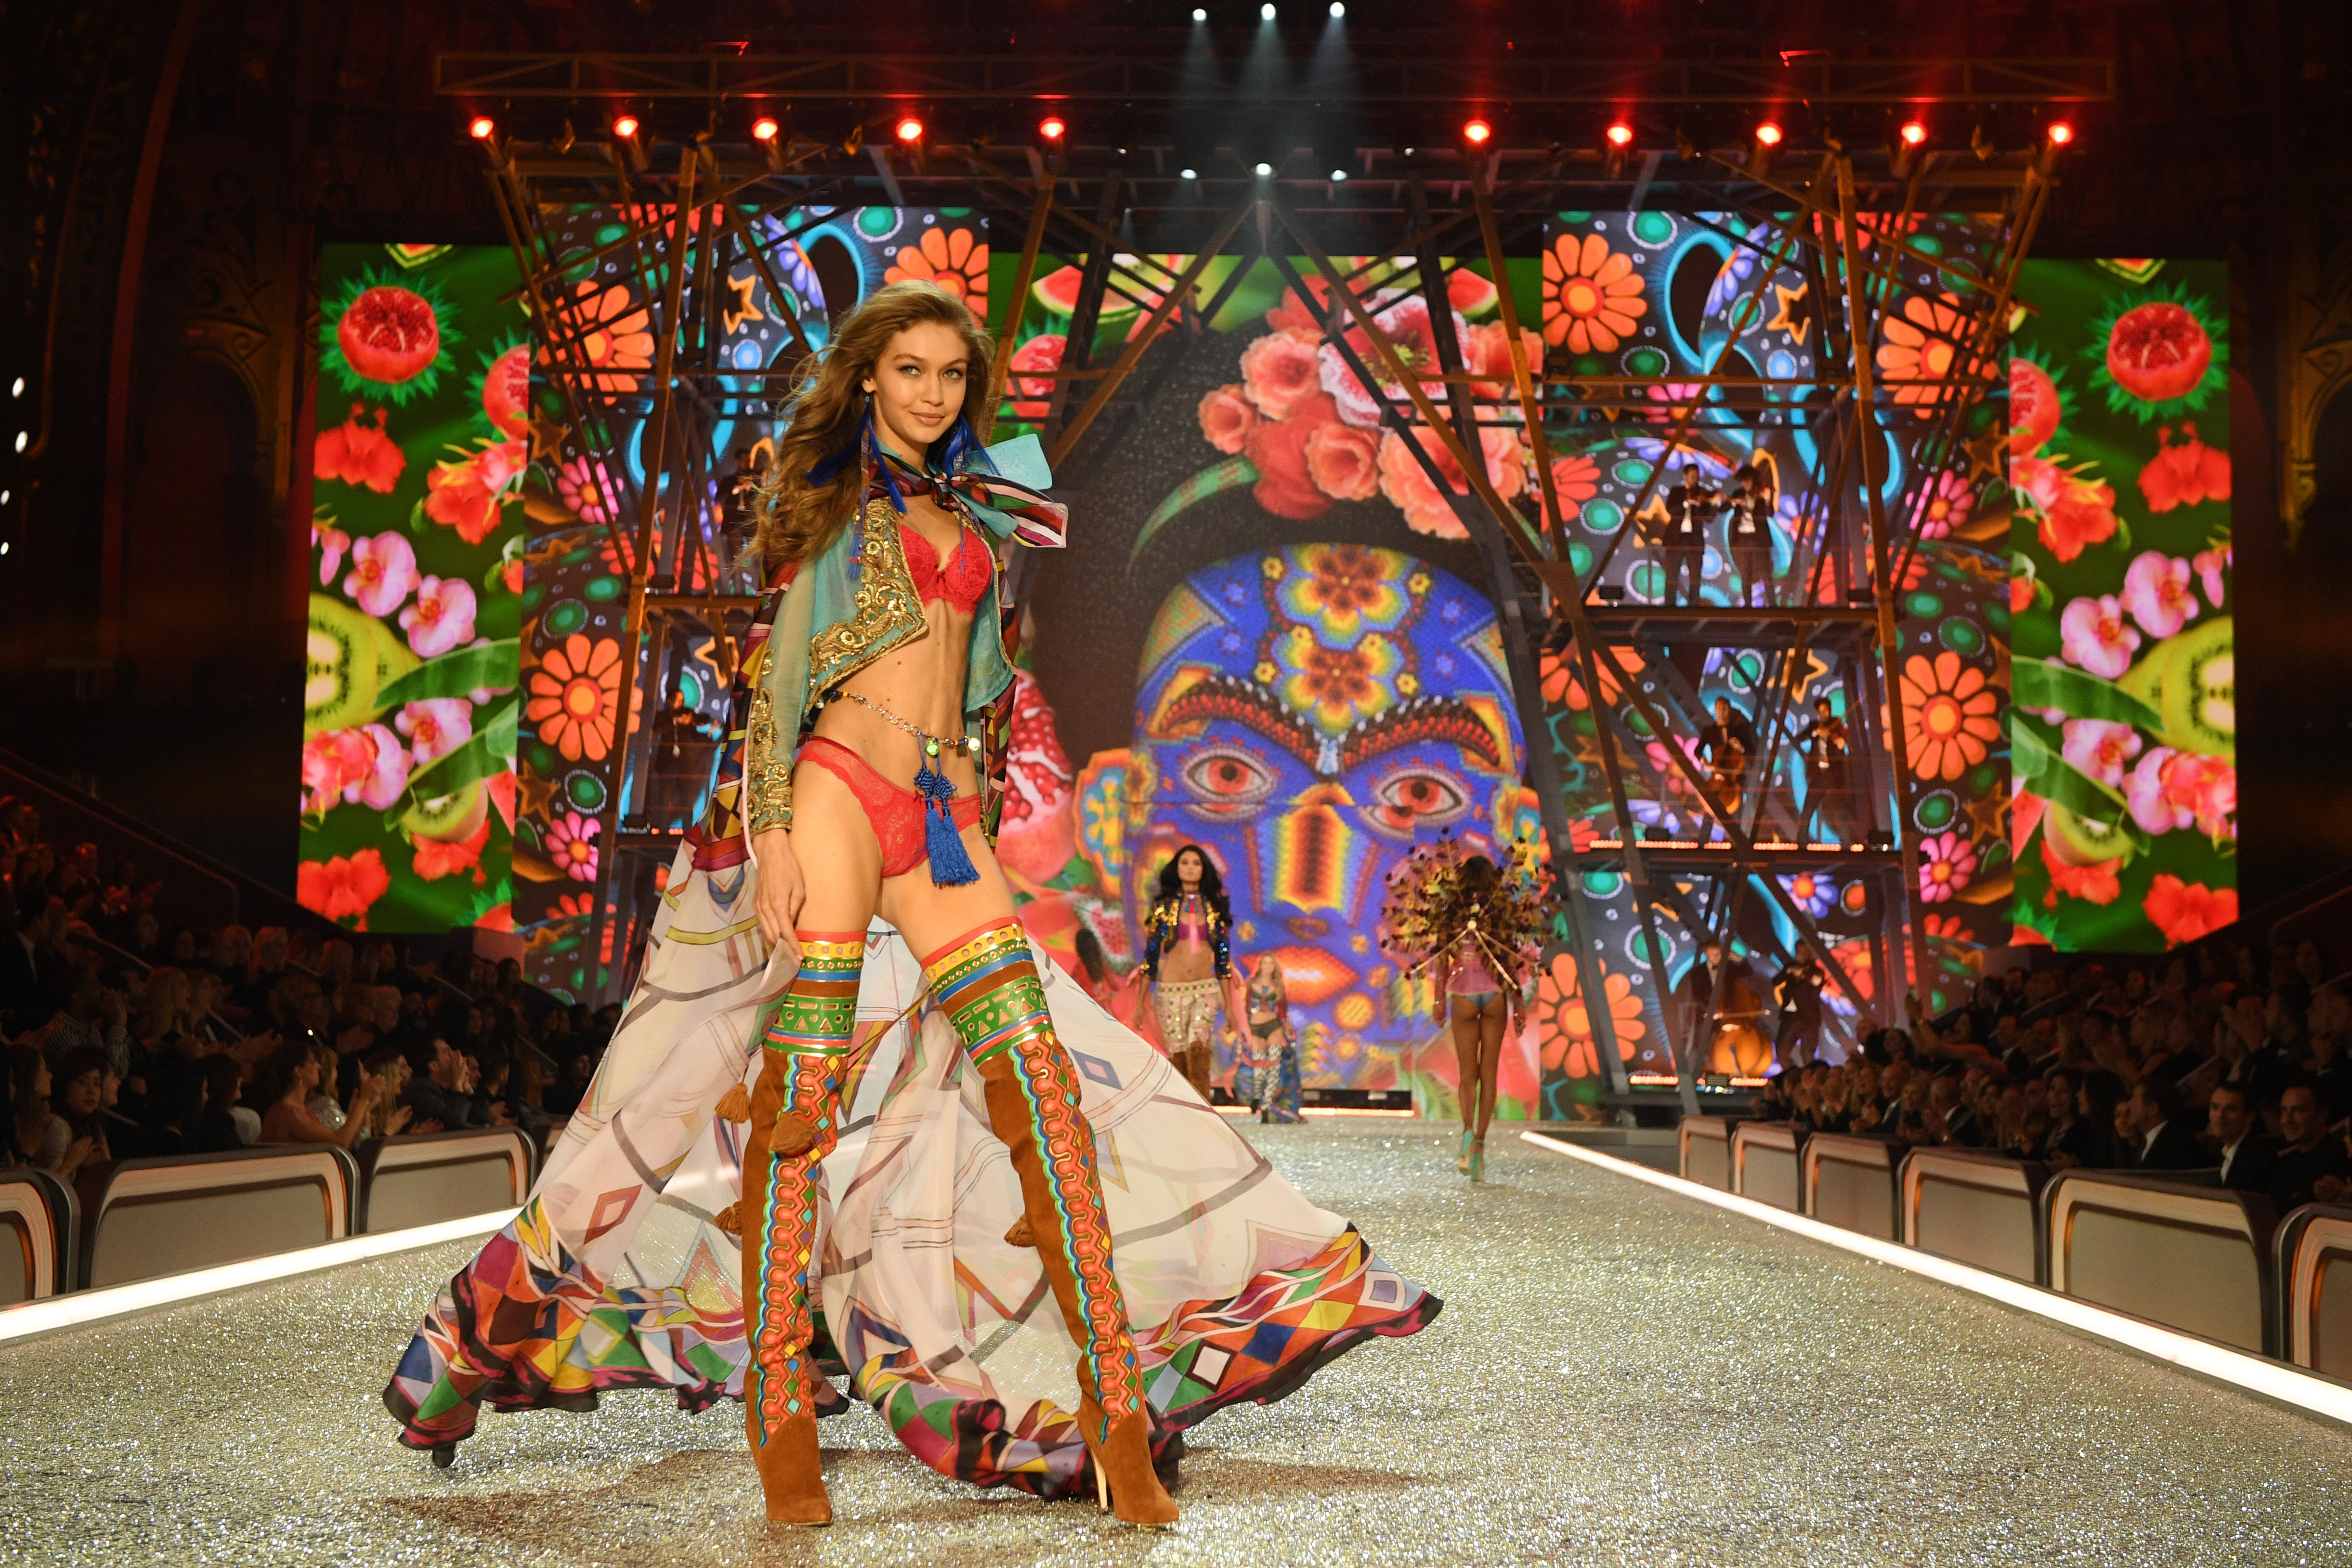 PARIS, FRANCE - NOVEMBER 30: Gigi Hadid walks the runway during the 2016 Victoria's Secret Fashion Show on November 30, 2016 in Paris, France. (Photo by Dimitrios Kambouris/Getty Images for Victoria's Secret)